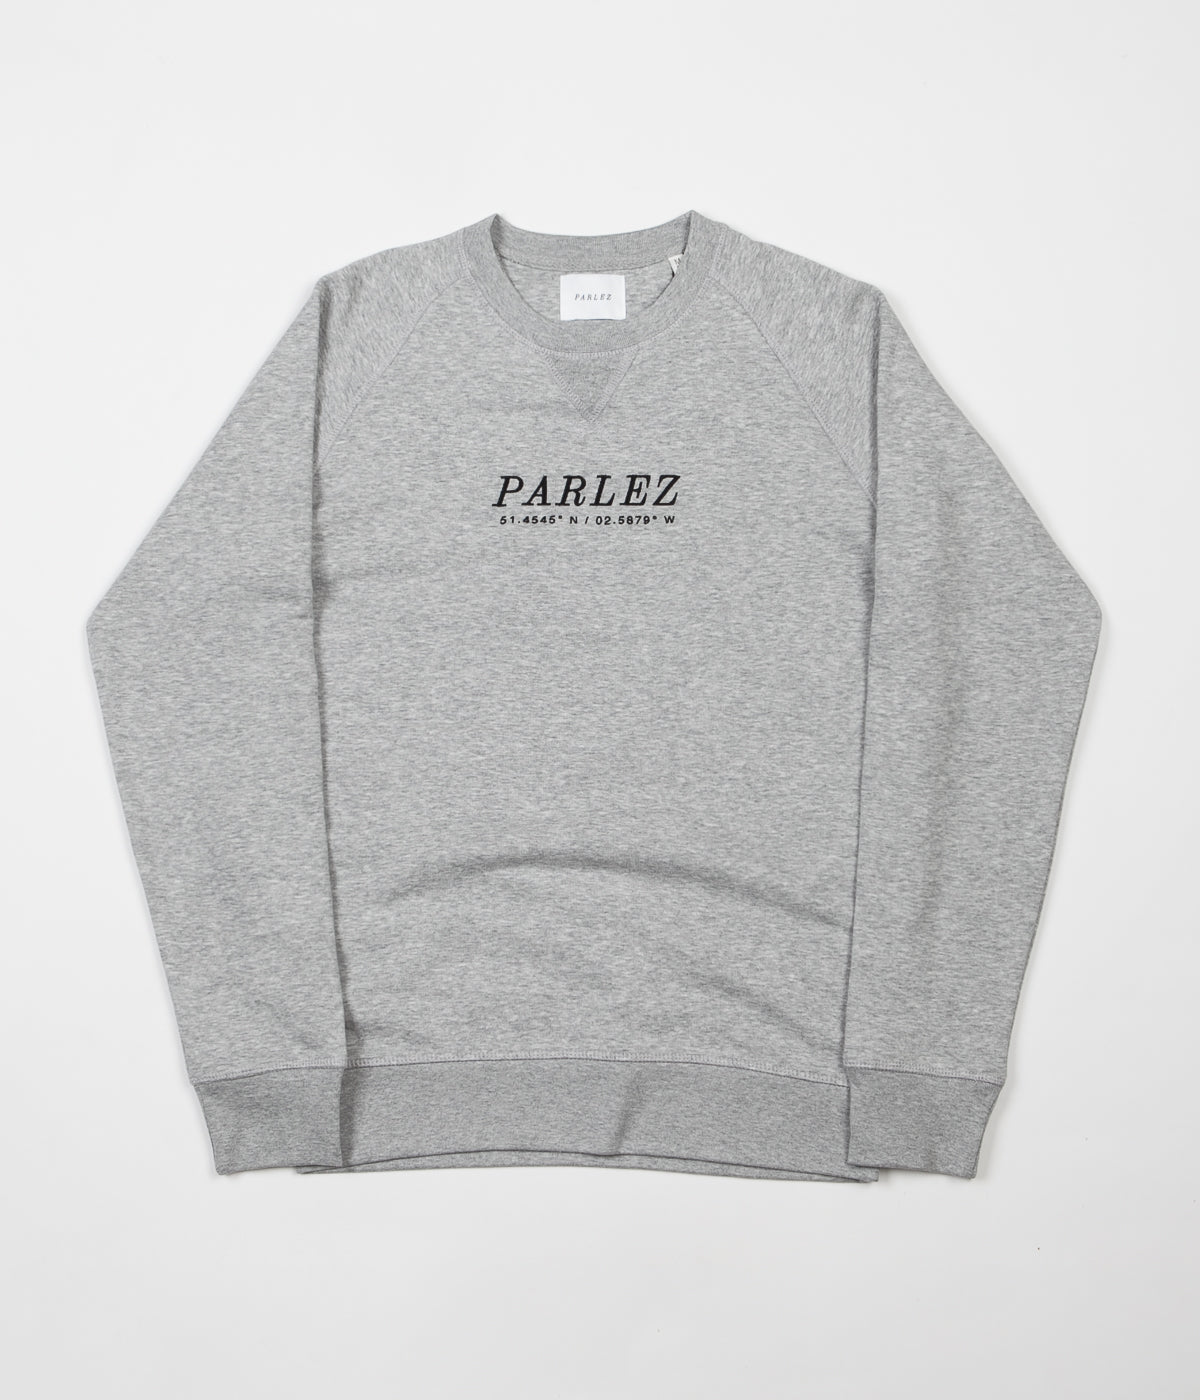 Parlez High Crewneck Sweatshirt - Heather Grey